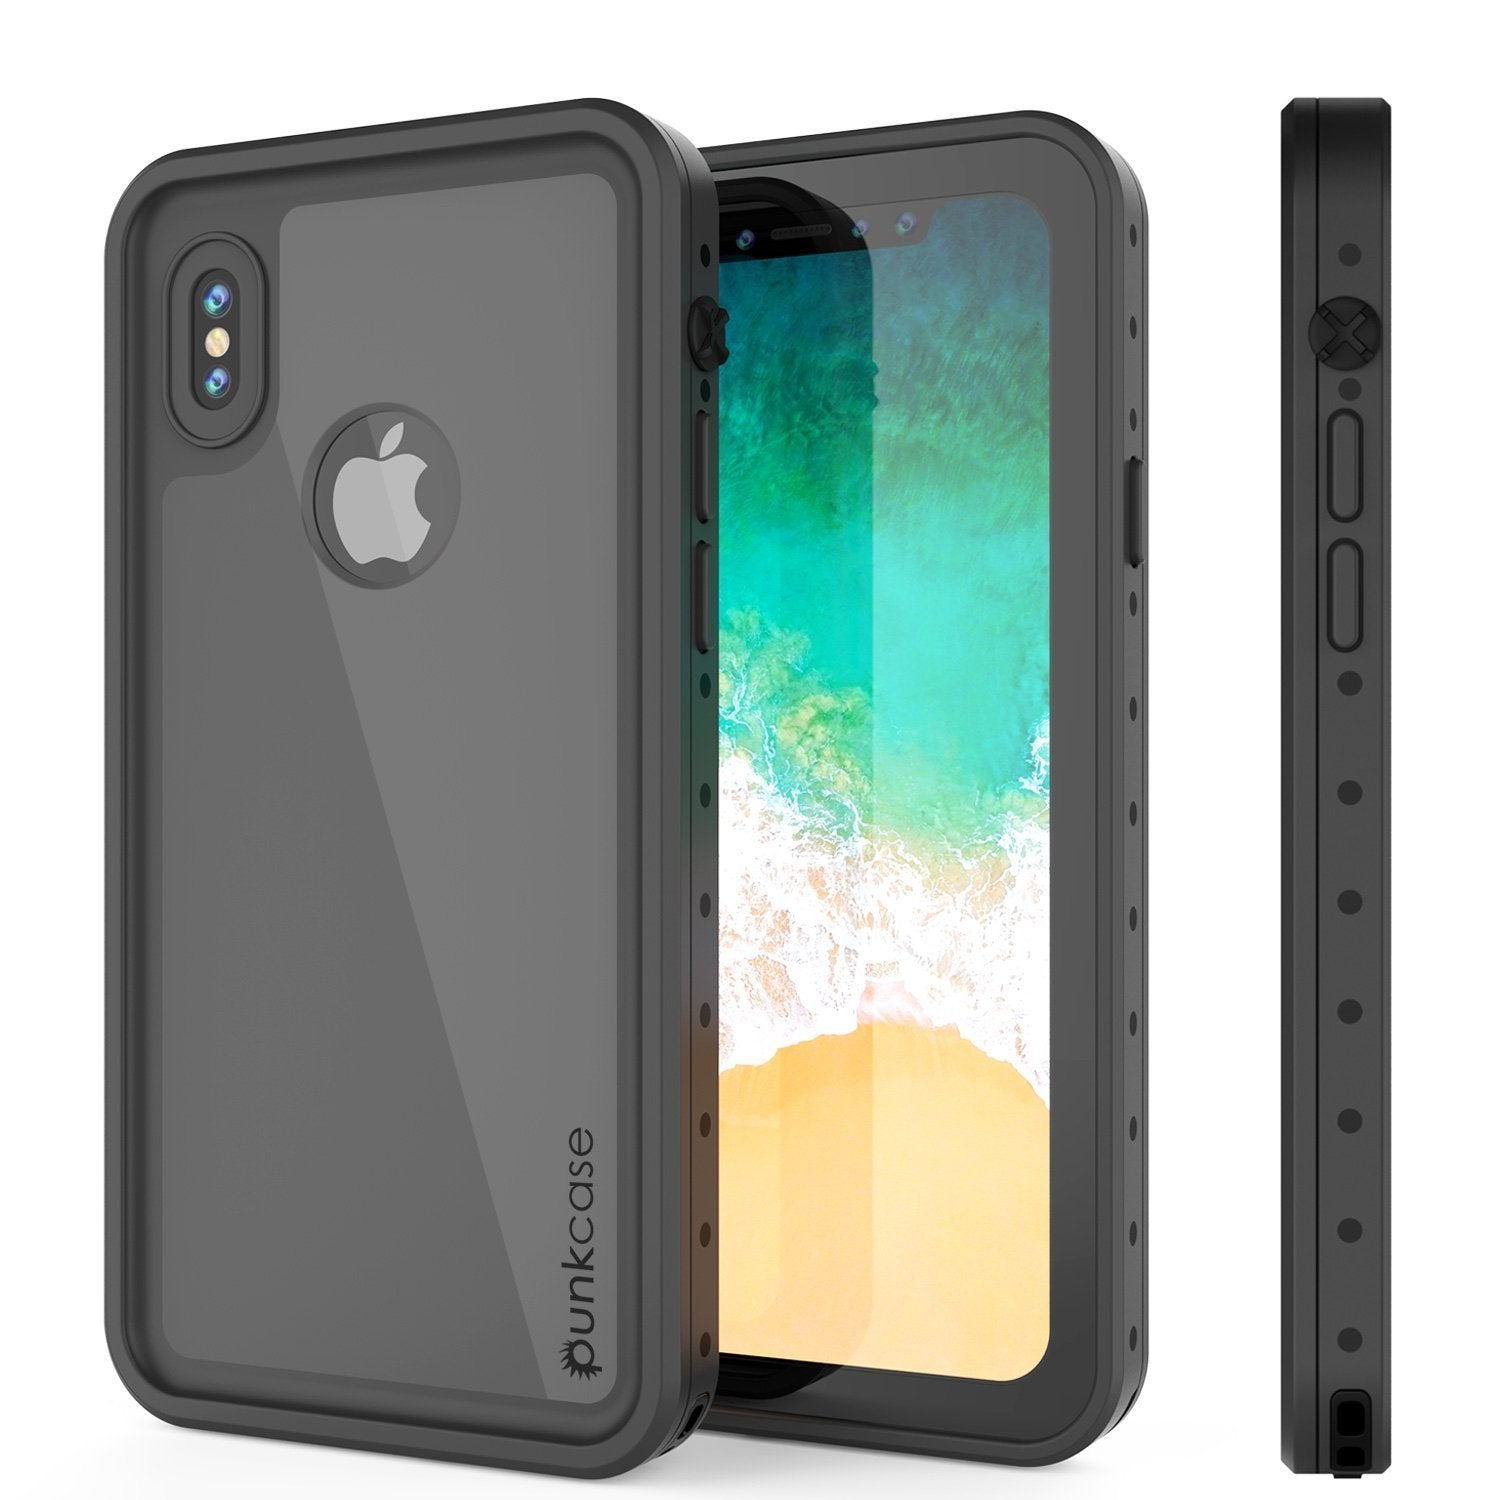 iPhone XR Waterproof IP68 Case, Punkcase [Black] [StudStar Series] [Slim Fit]